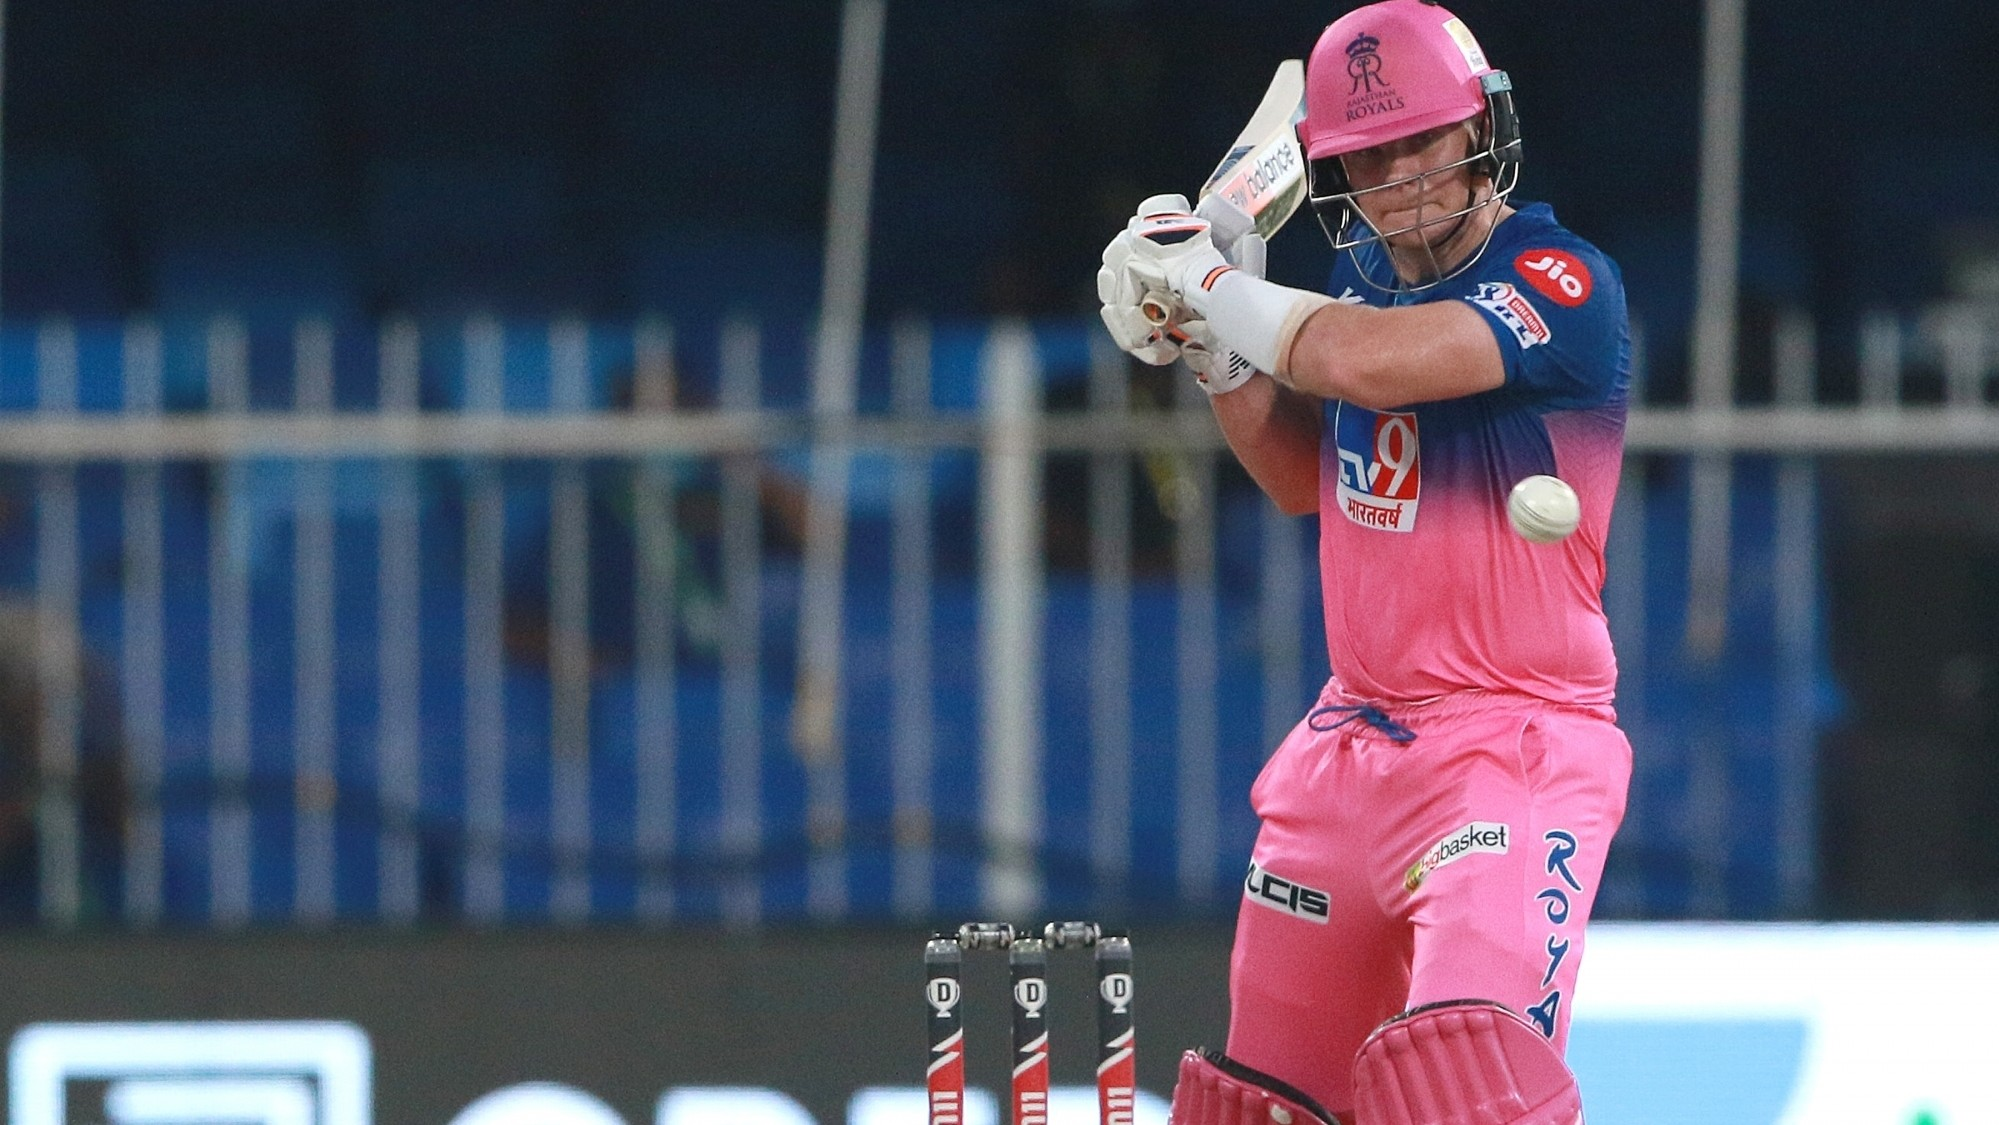 IPL 2021: Rajasthan Royals likely to release Steve Smith ahead of 2021 IPL auction, says report